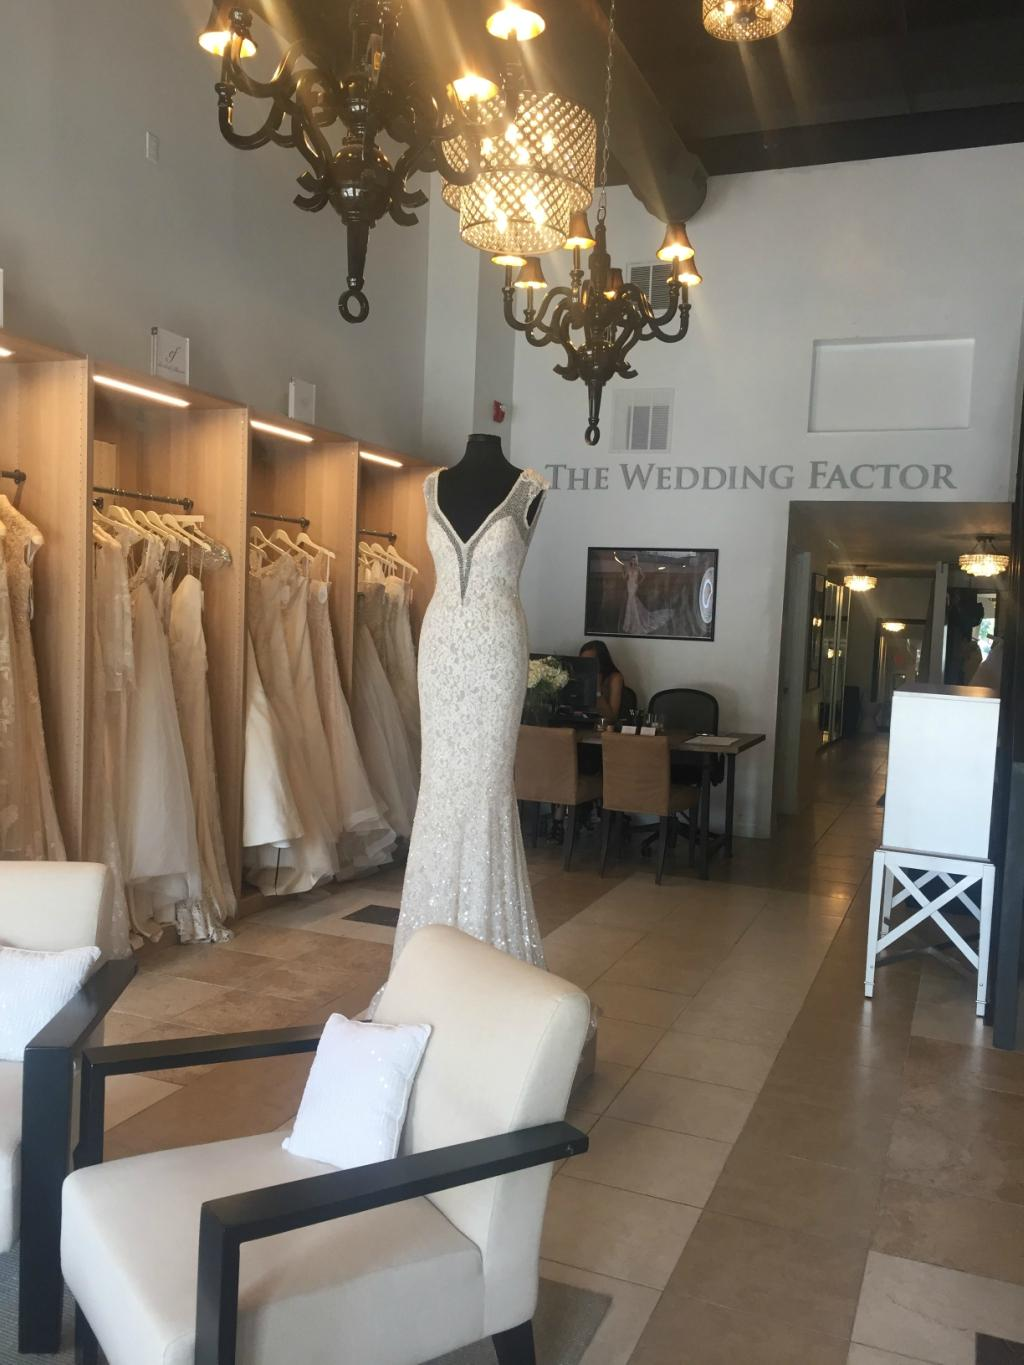 Best Places To Find A Wedding Dress For Your Philadelphia Wedding ...